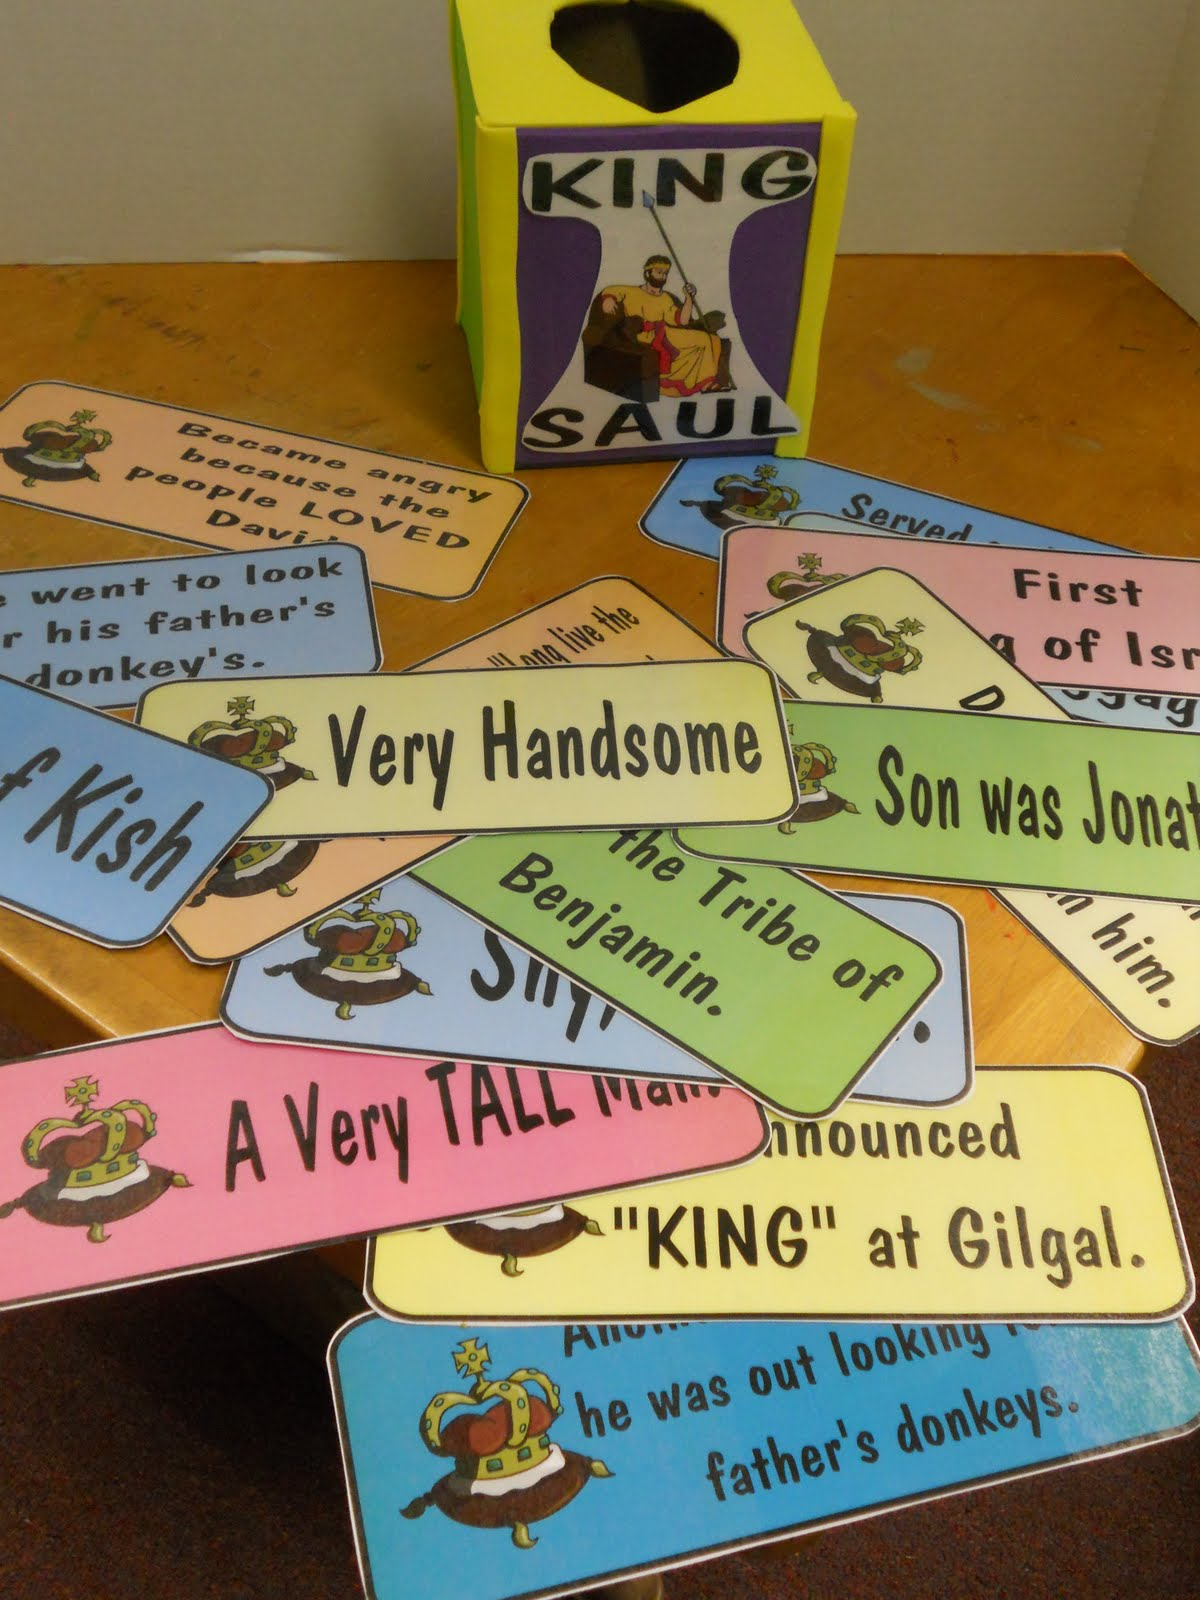 Hands On Bible Teacher Tissue Box Turned Review Game King Saul